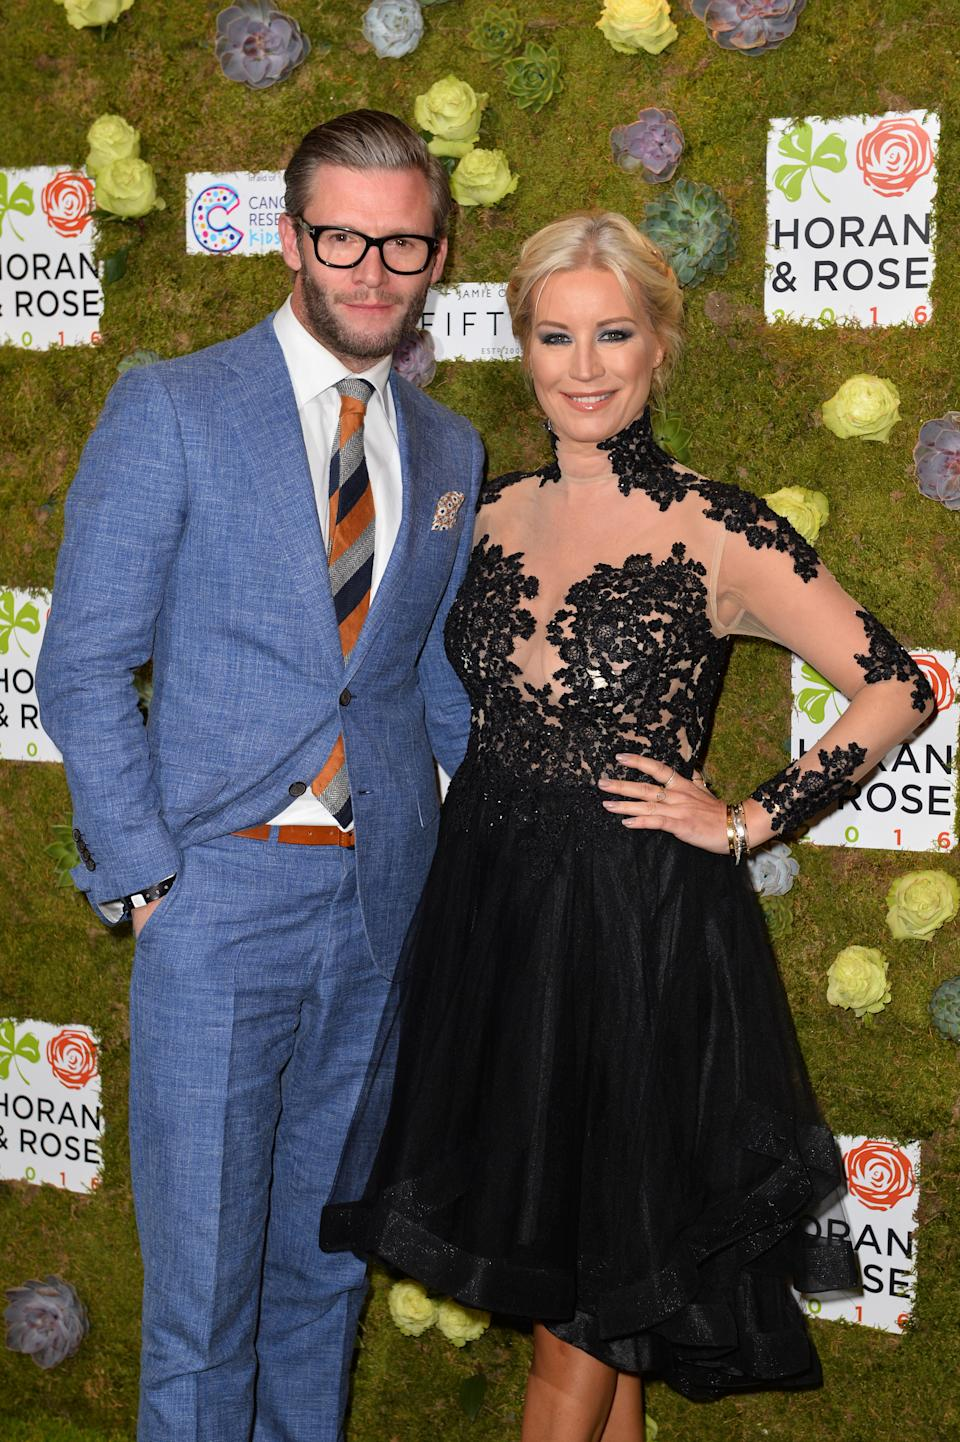 Denise van Outen and Eddie Boxshall, who are hoping to get married this year, say therapy will give them a stronger relationship in the long term